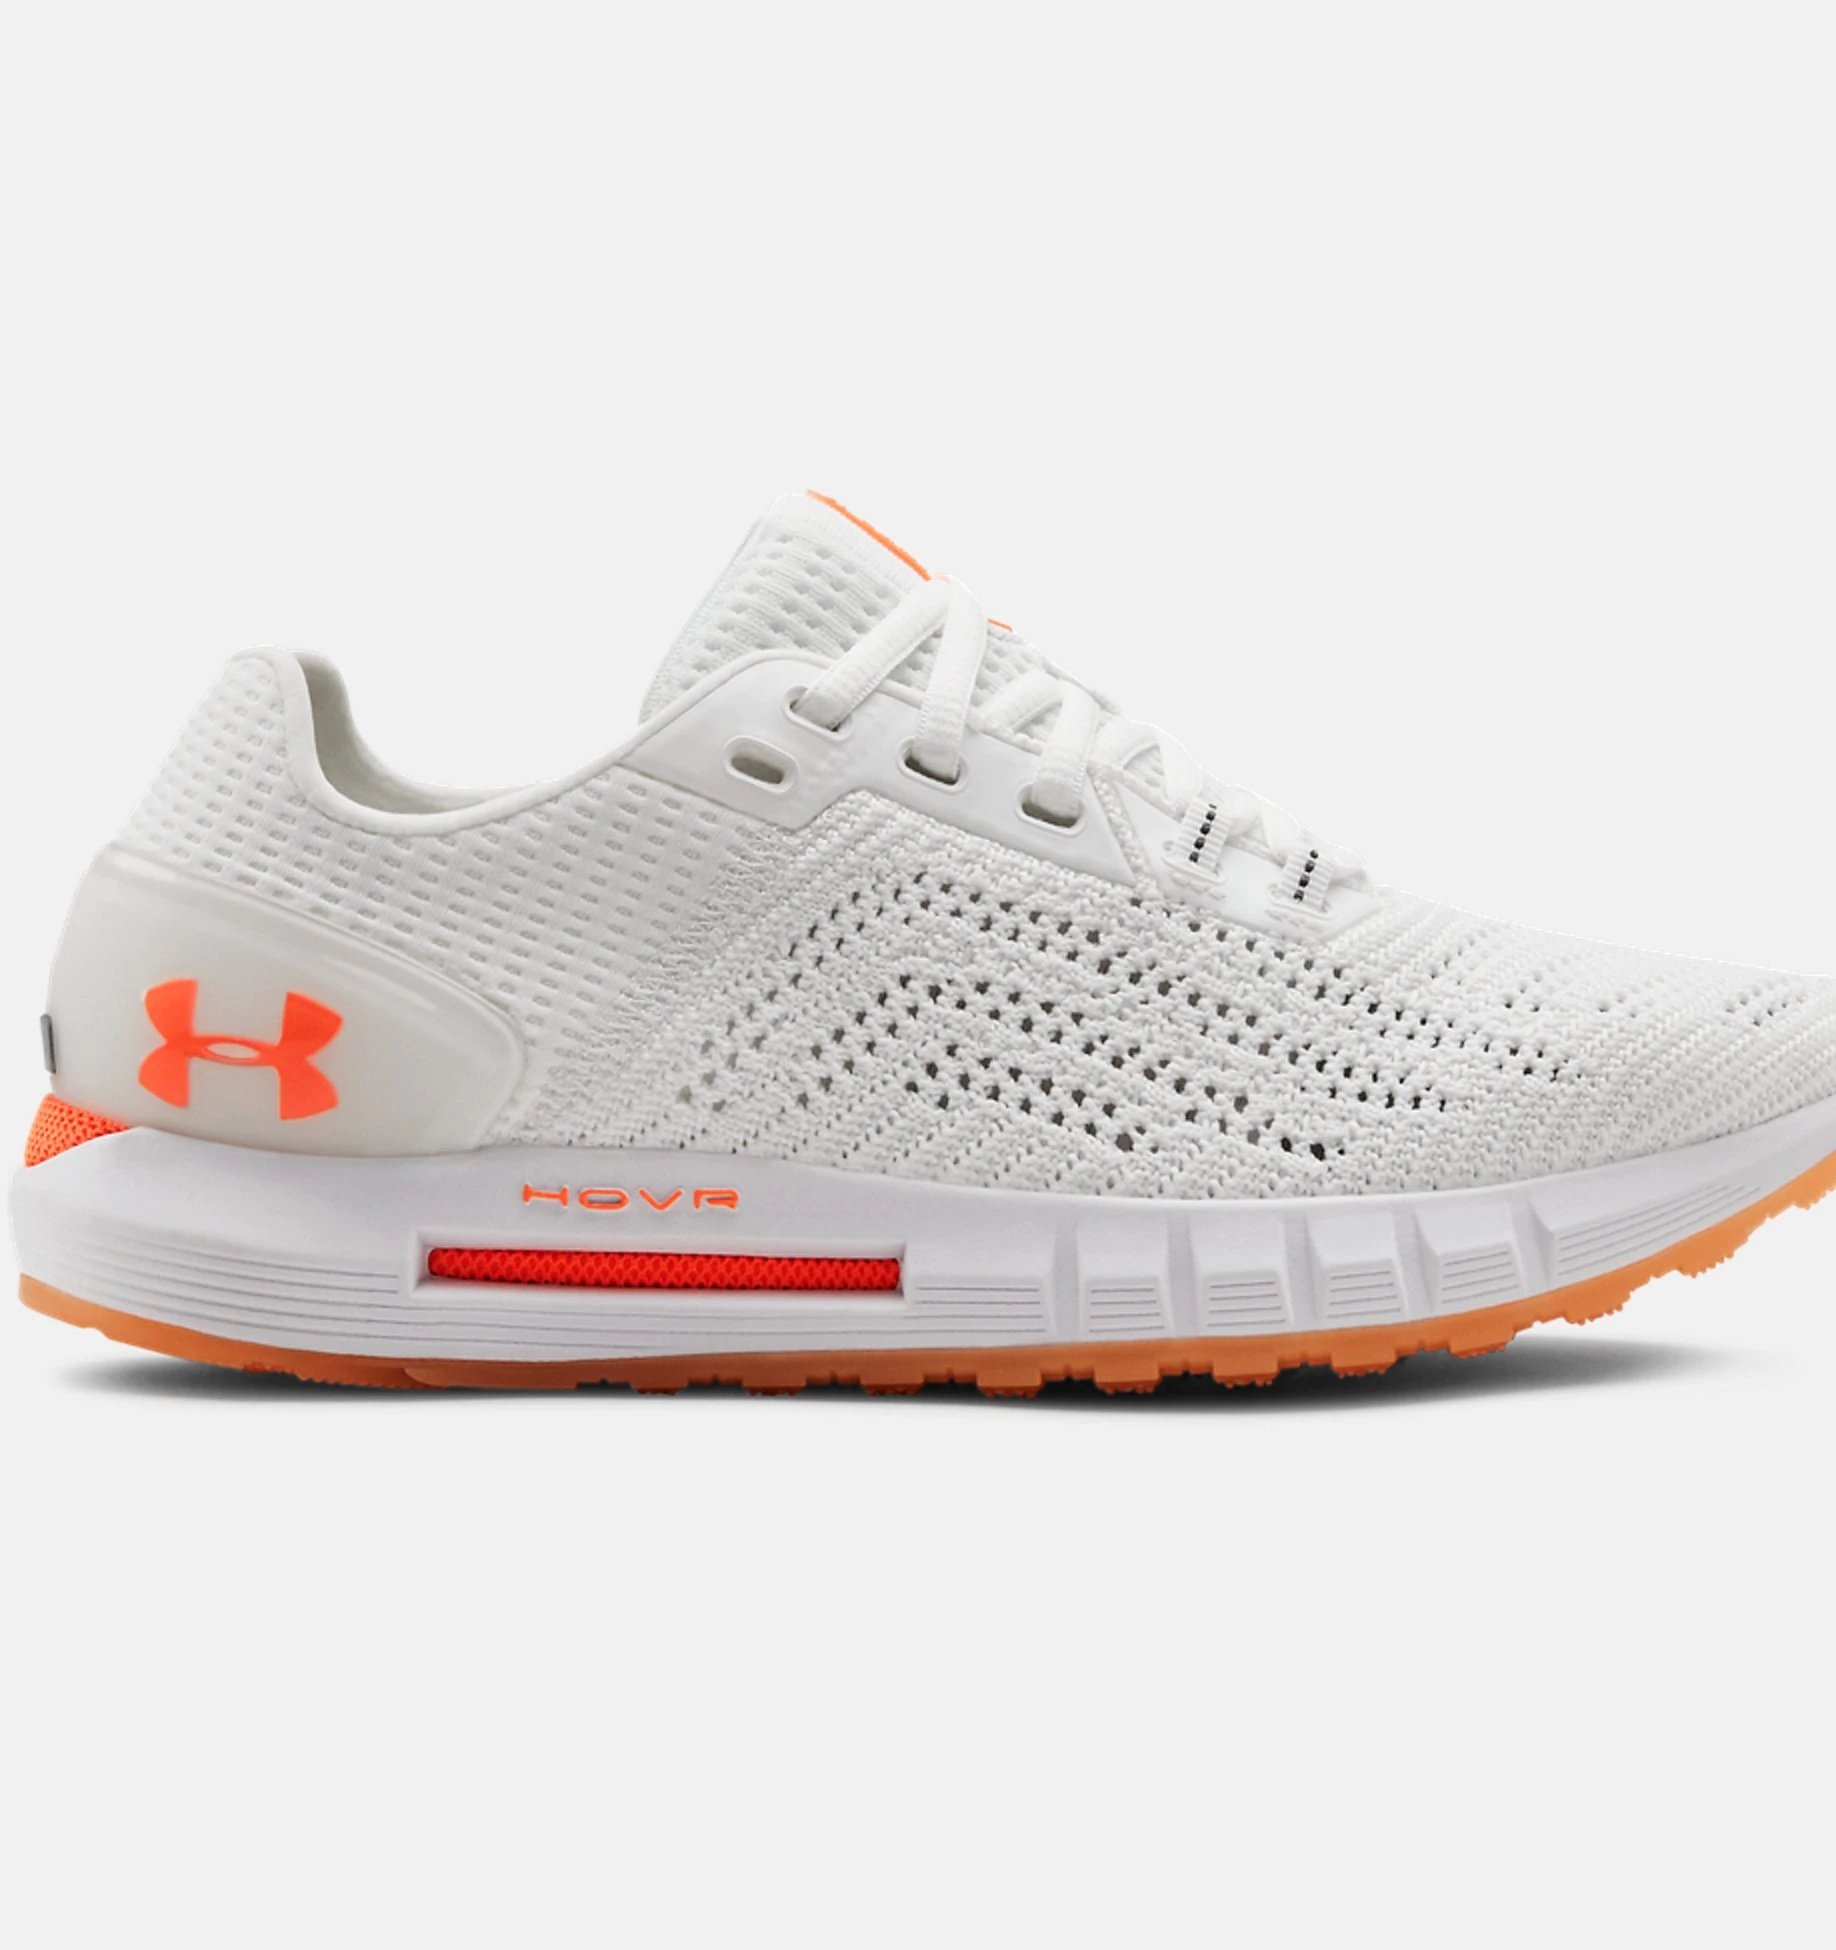 Under Armour HOVR SONIC 2 white